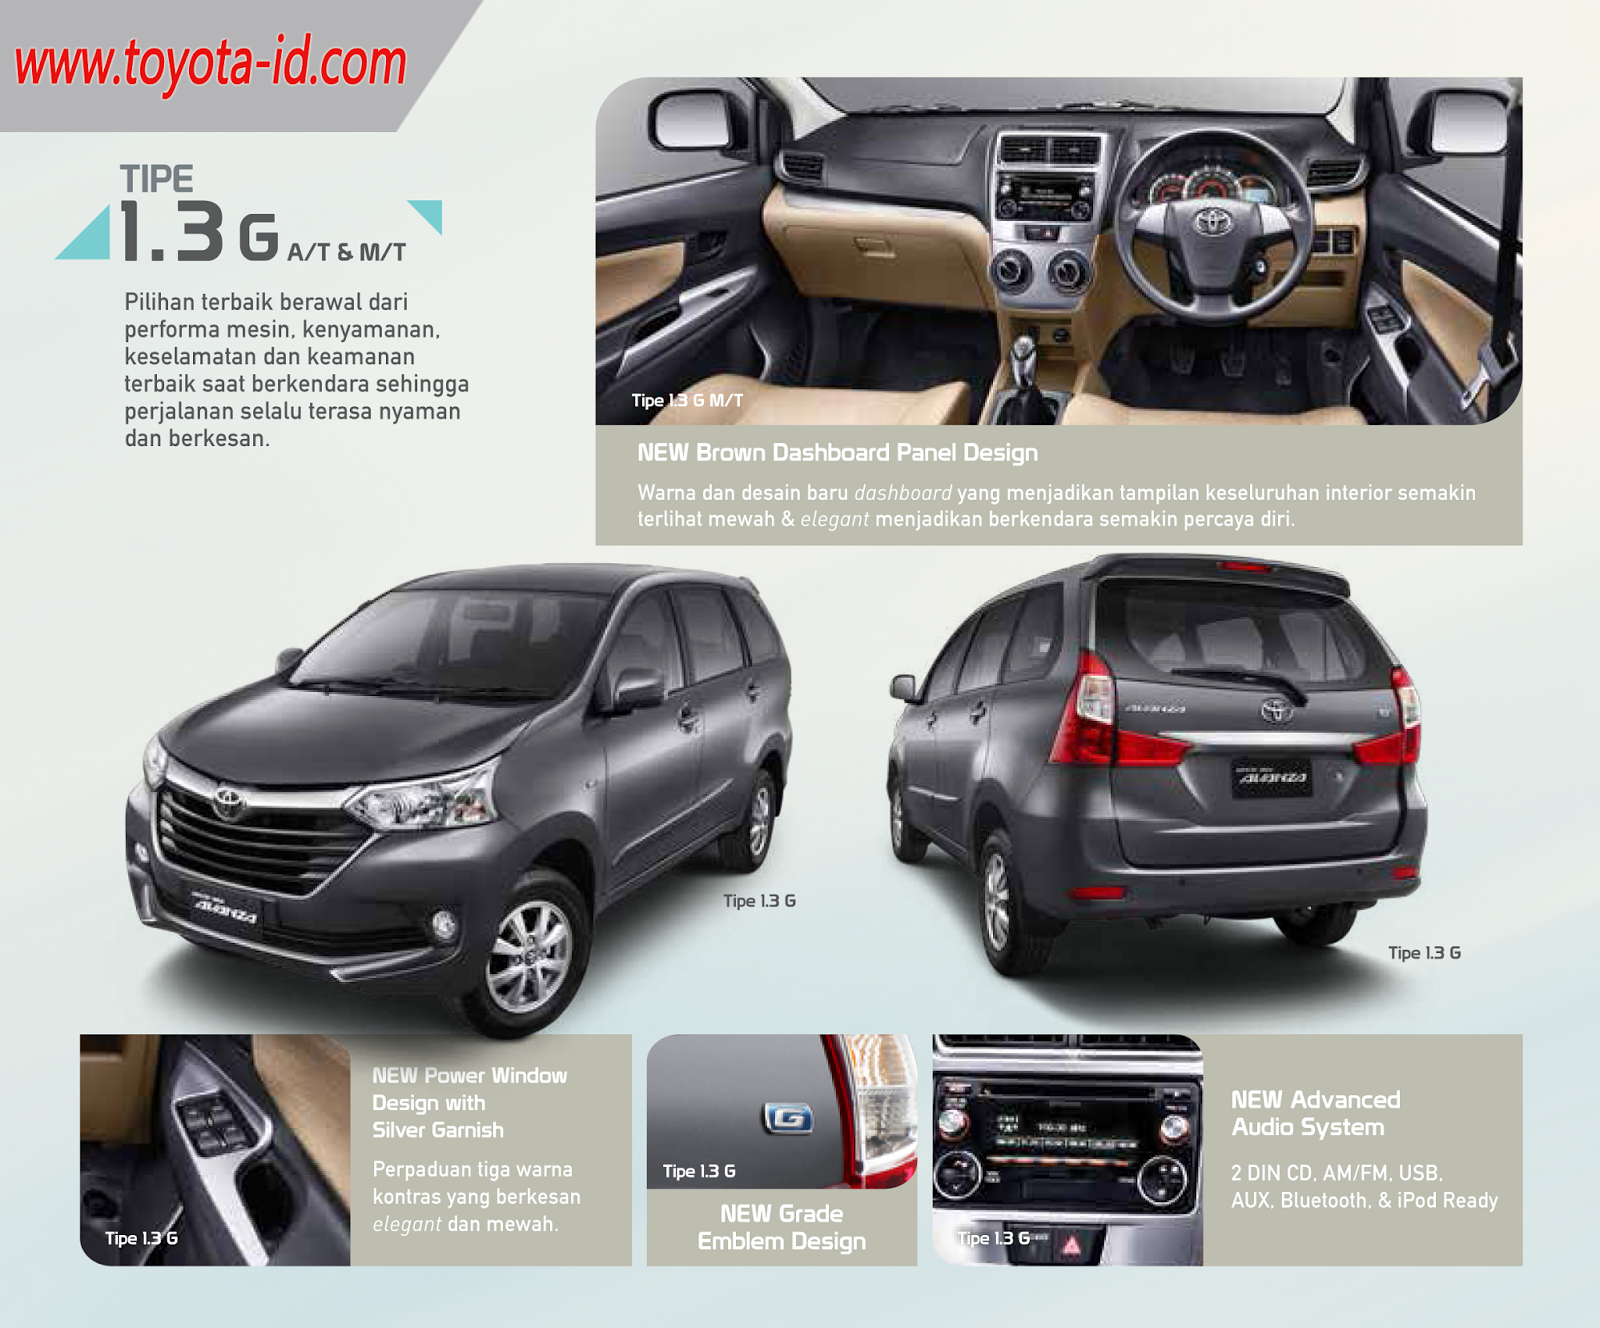 Grand New Avanza Warna Grey Metallic Type E 2017 Spesifikasi Toyota 2015 Astra Indonesia Tipe 1 5 G A T Dan M